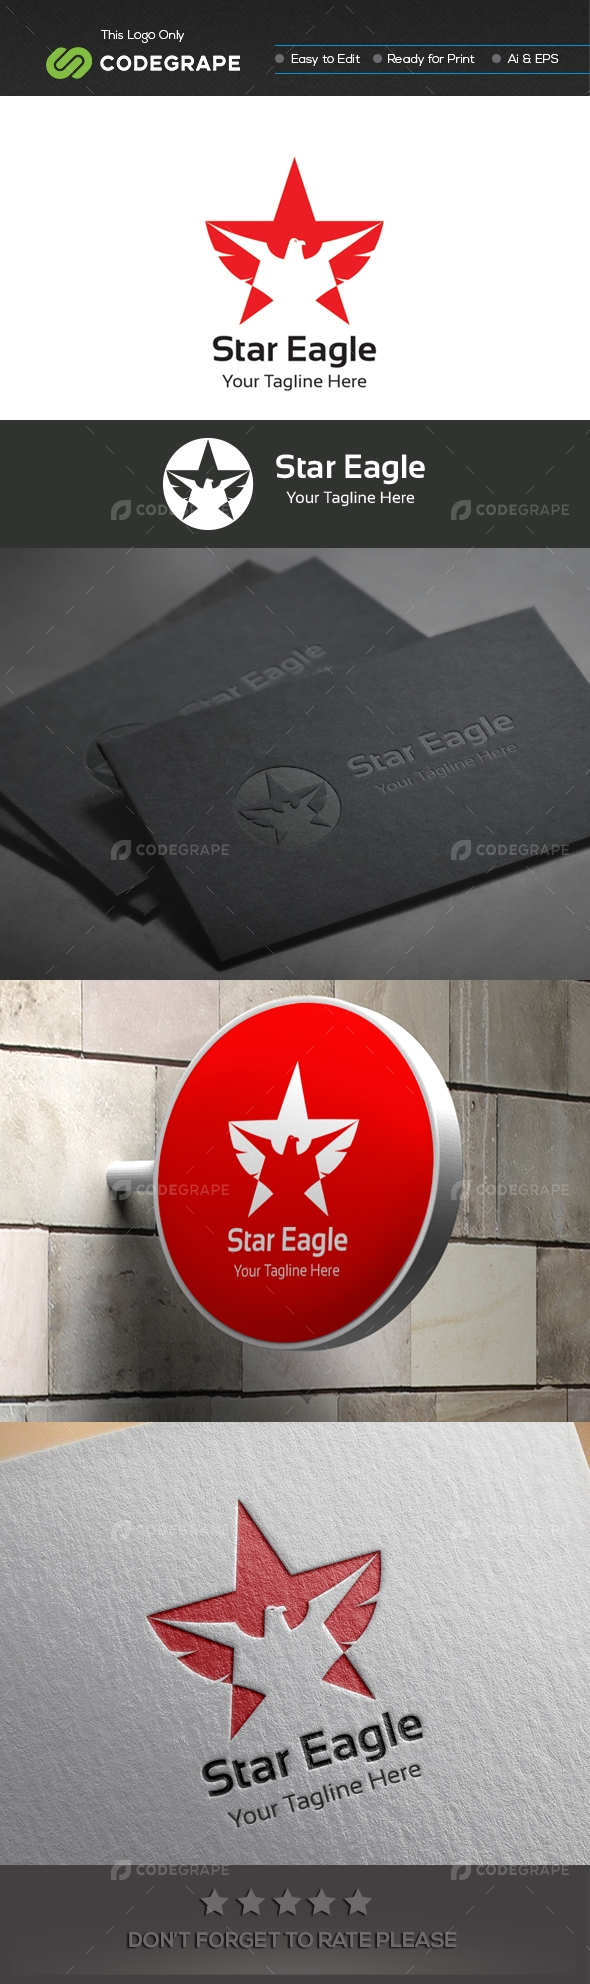 Star Eagle Logo